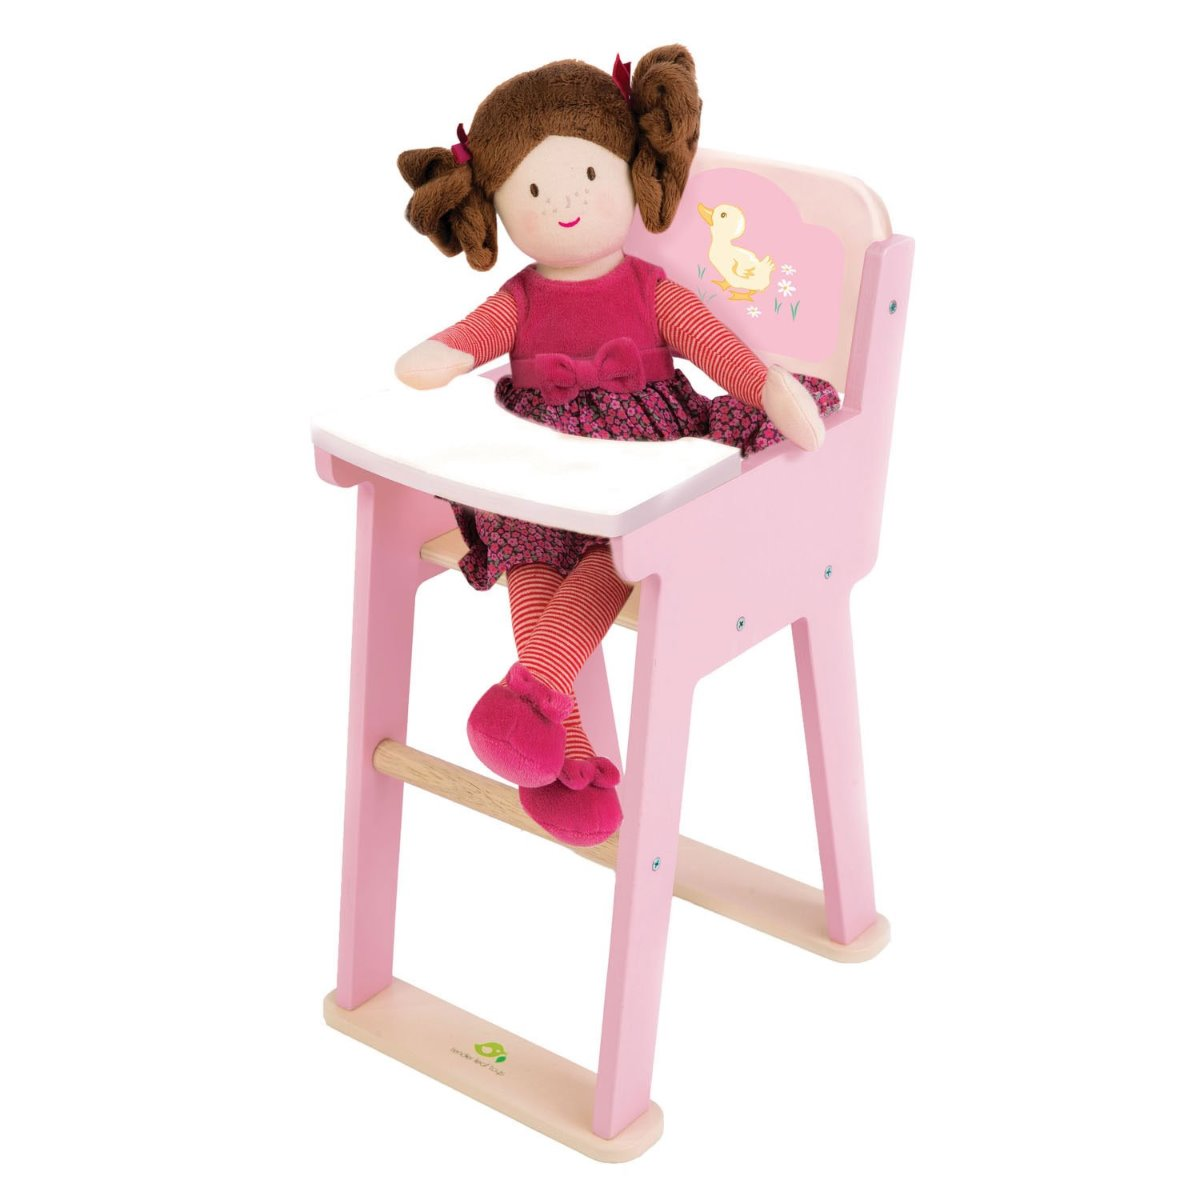 Tender Leaf Toys wooden dolls highchair at Little Sprout